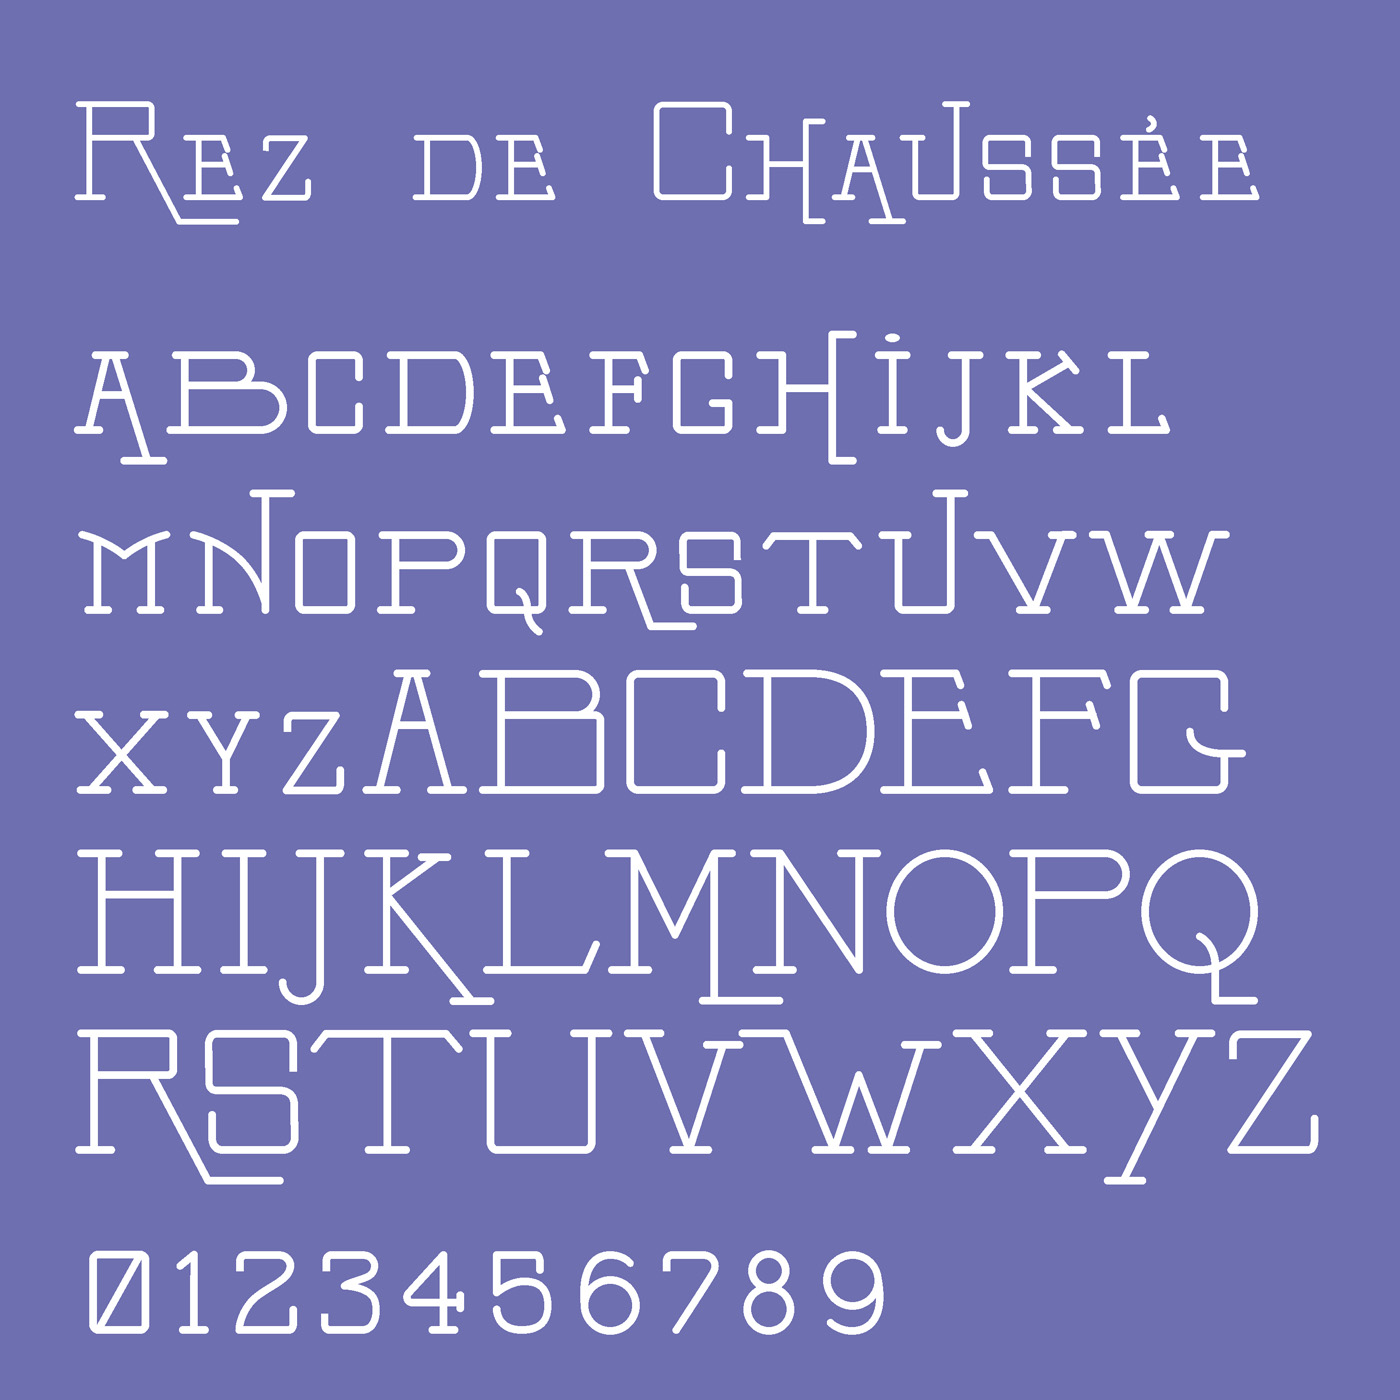 Rex de Chaussee typeface designed by Thomas Bush